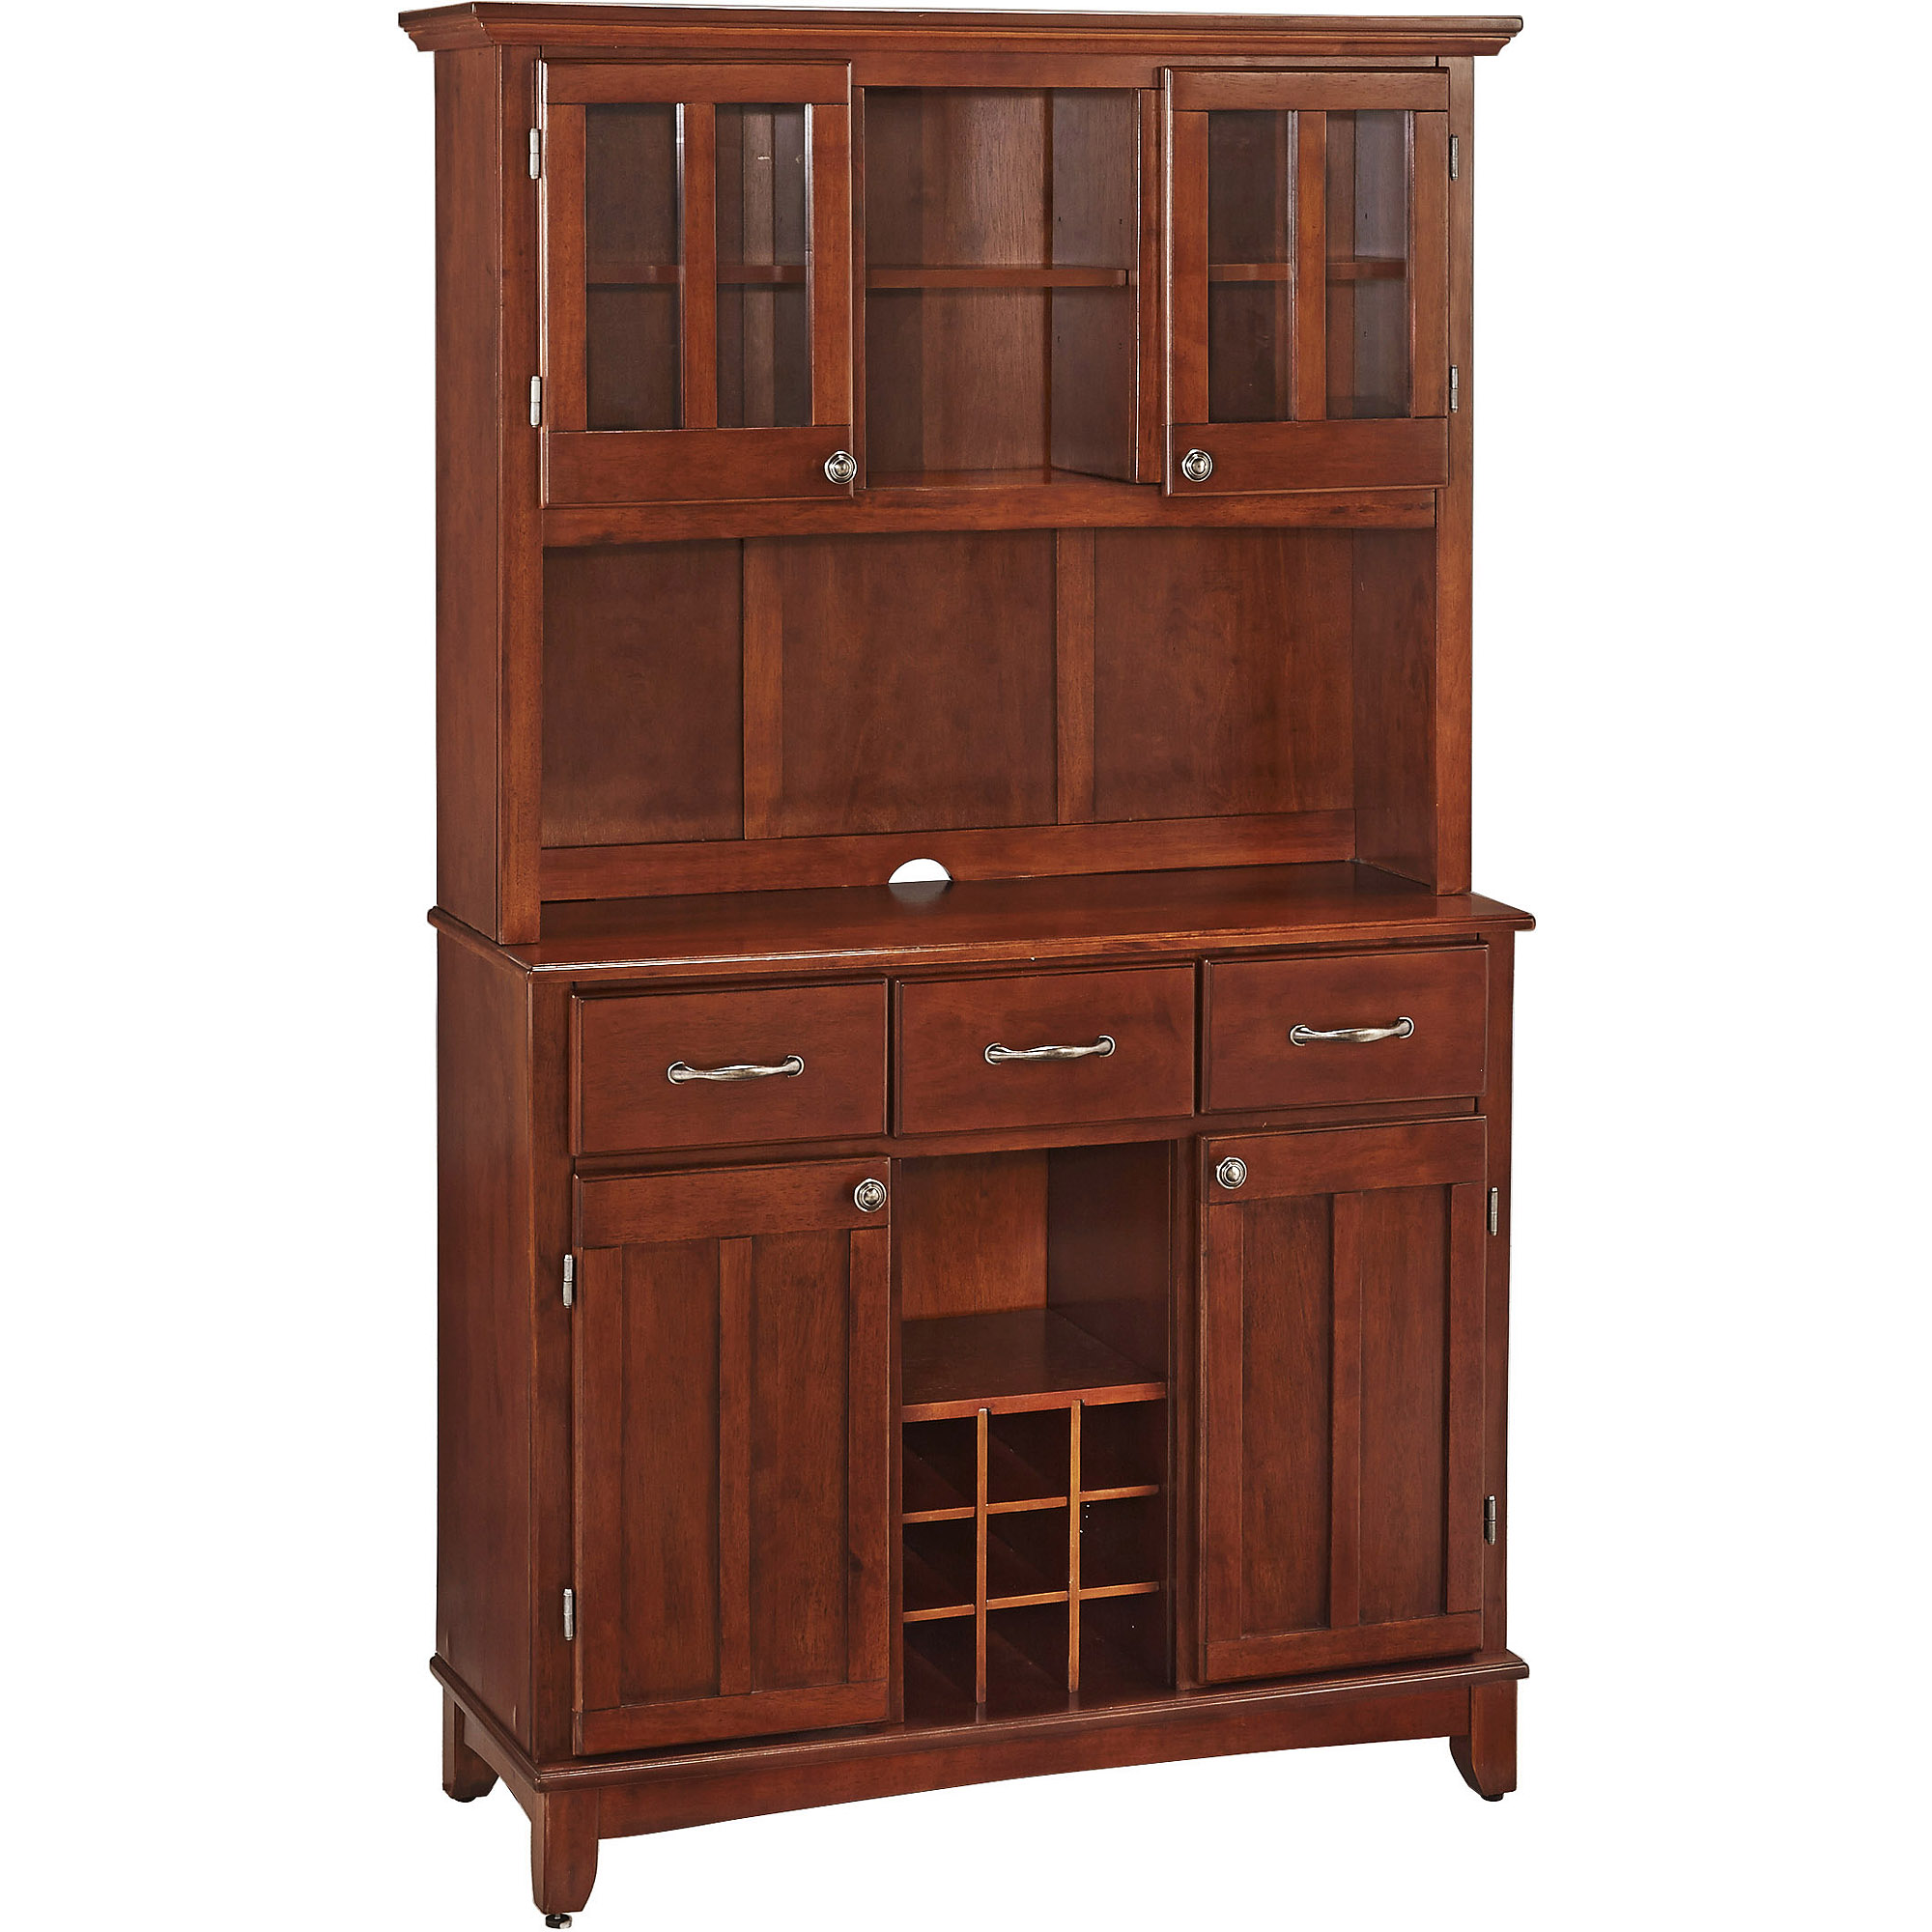 Best Kitchen Gallery: China Cabi S Walmart of Kitchen Armoire Cabinets on cal-ite.com